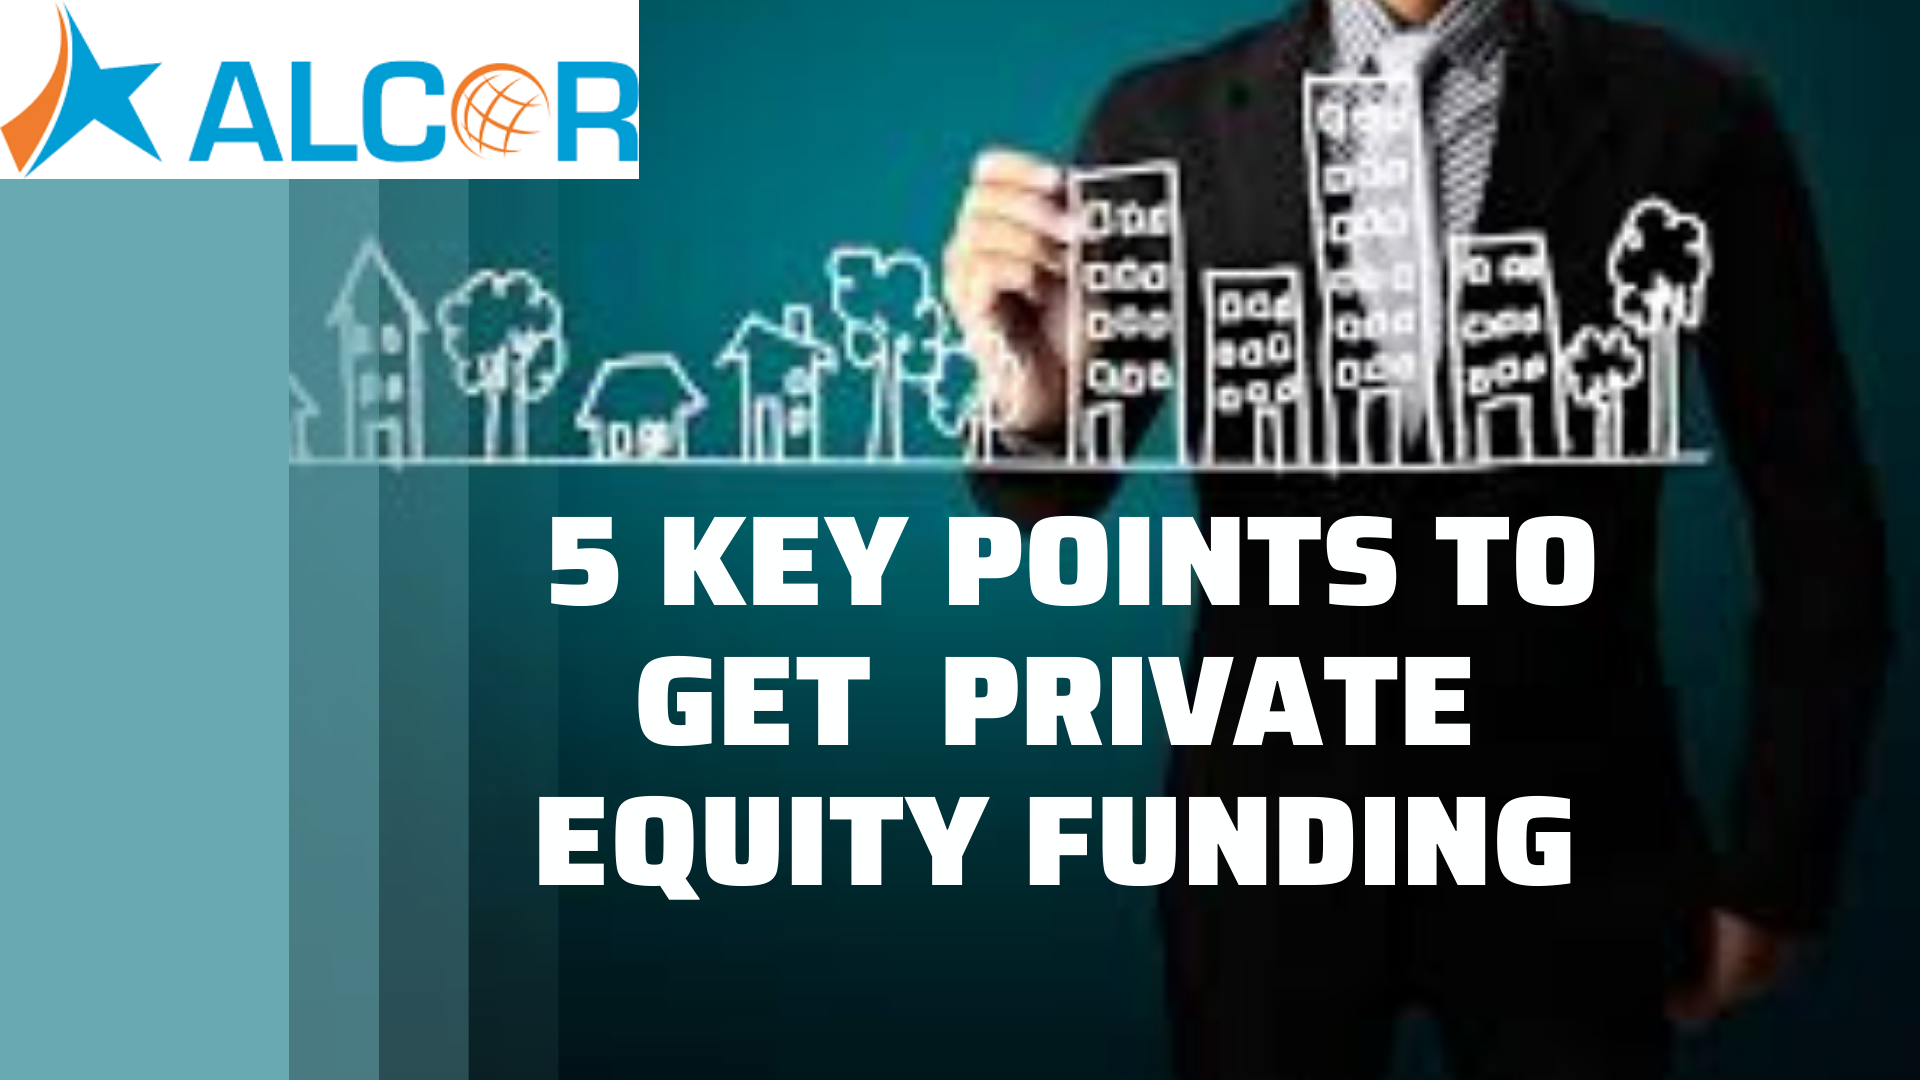 5 key points to get Private Equity Funding